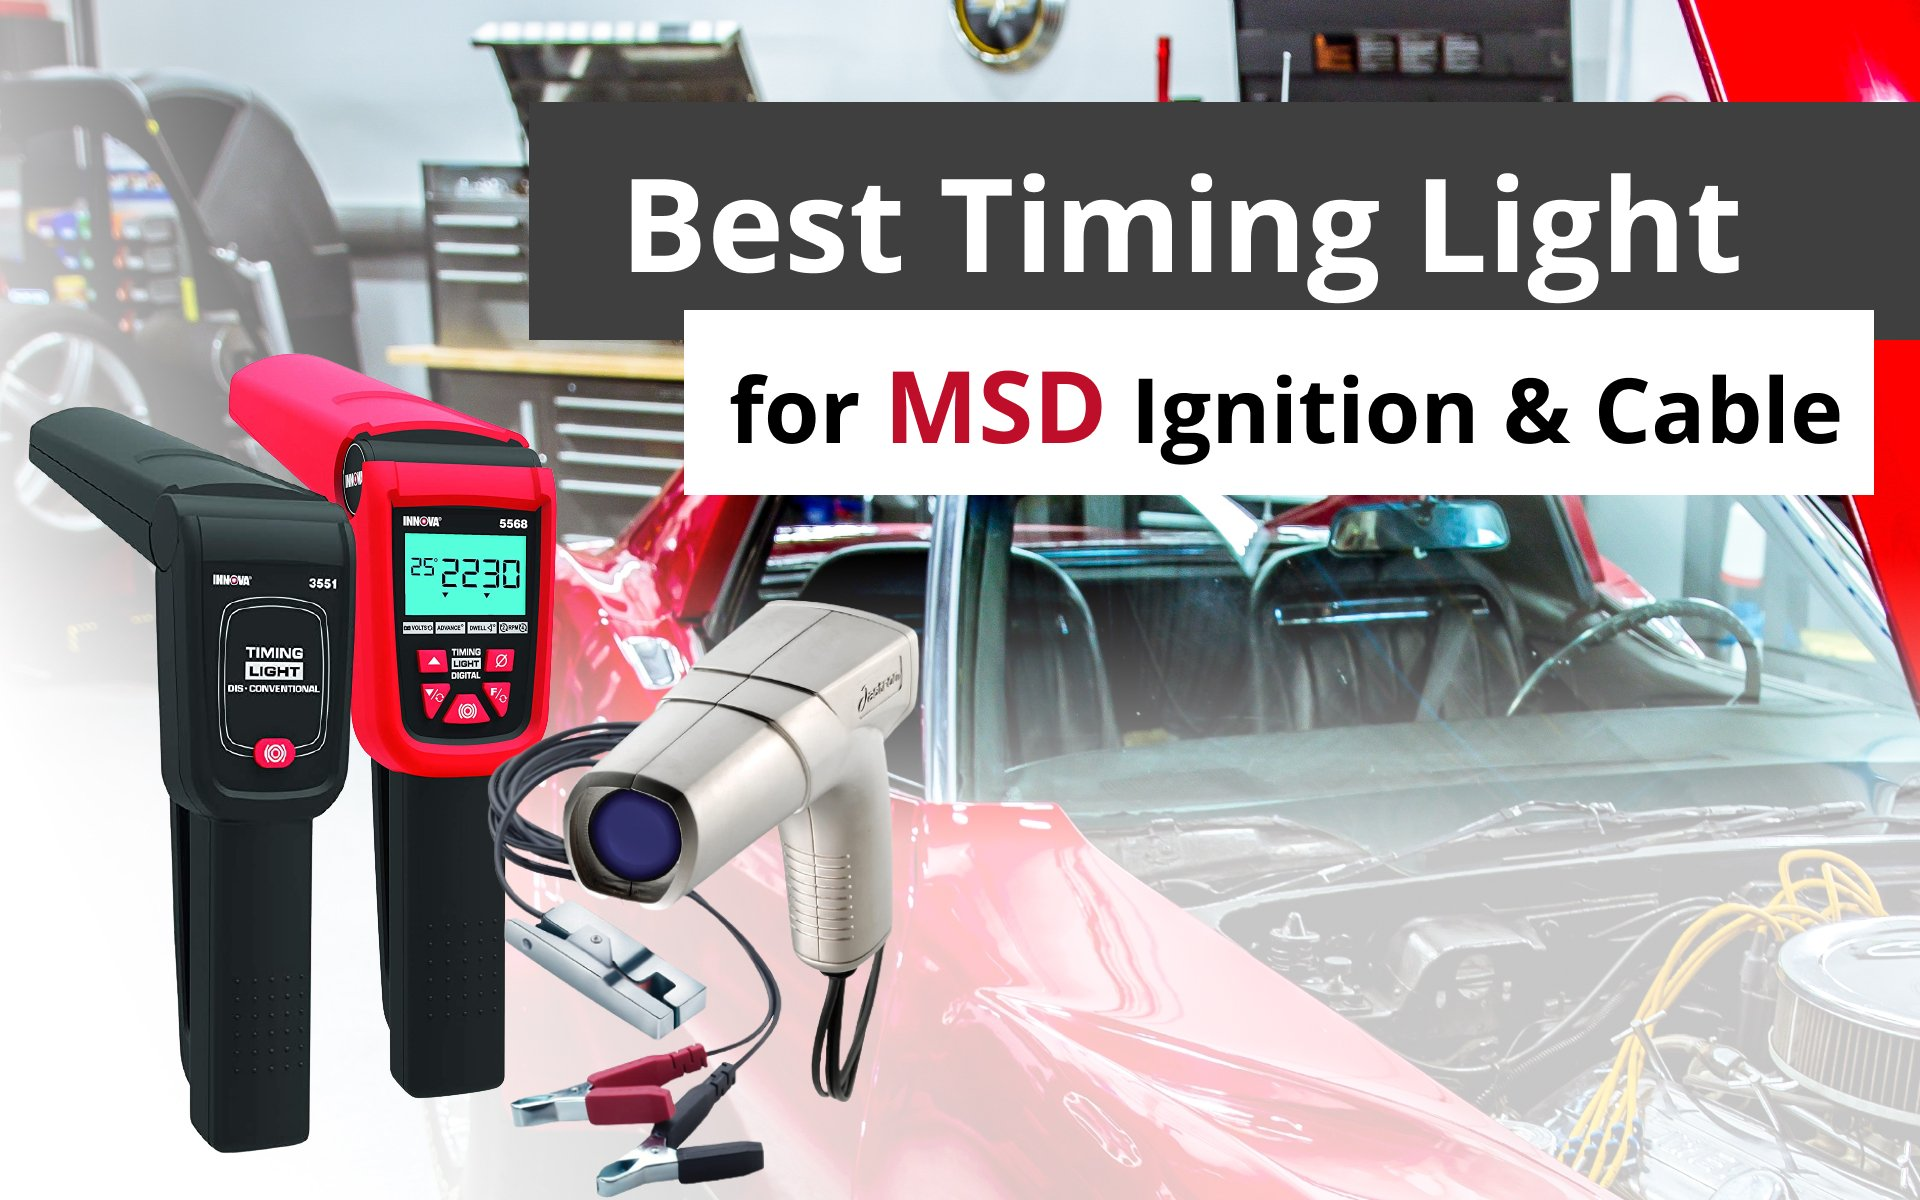 Best Timing Light for MSD Ignition and Cable: image